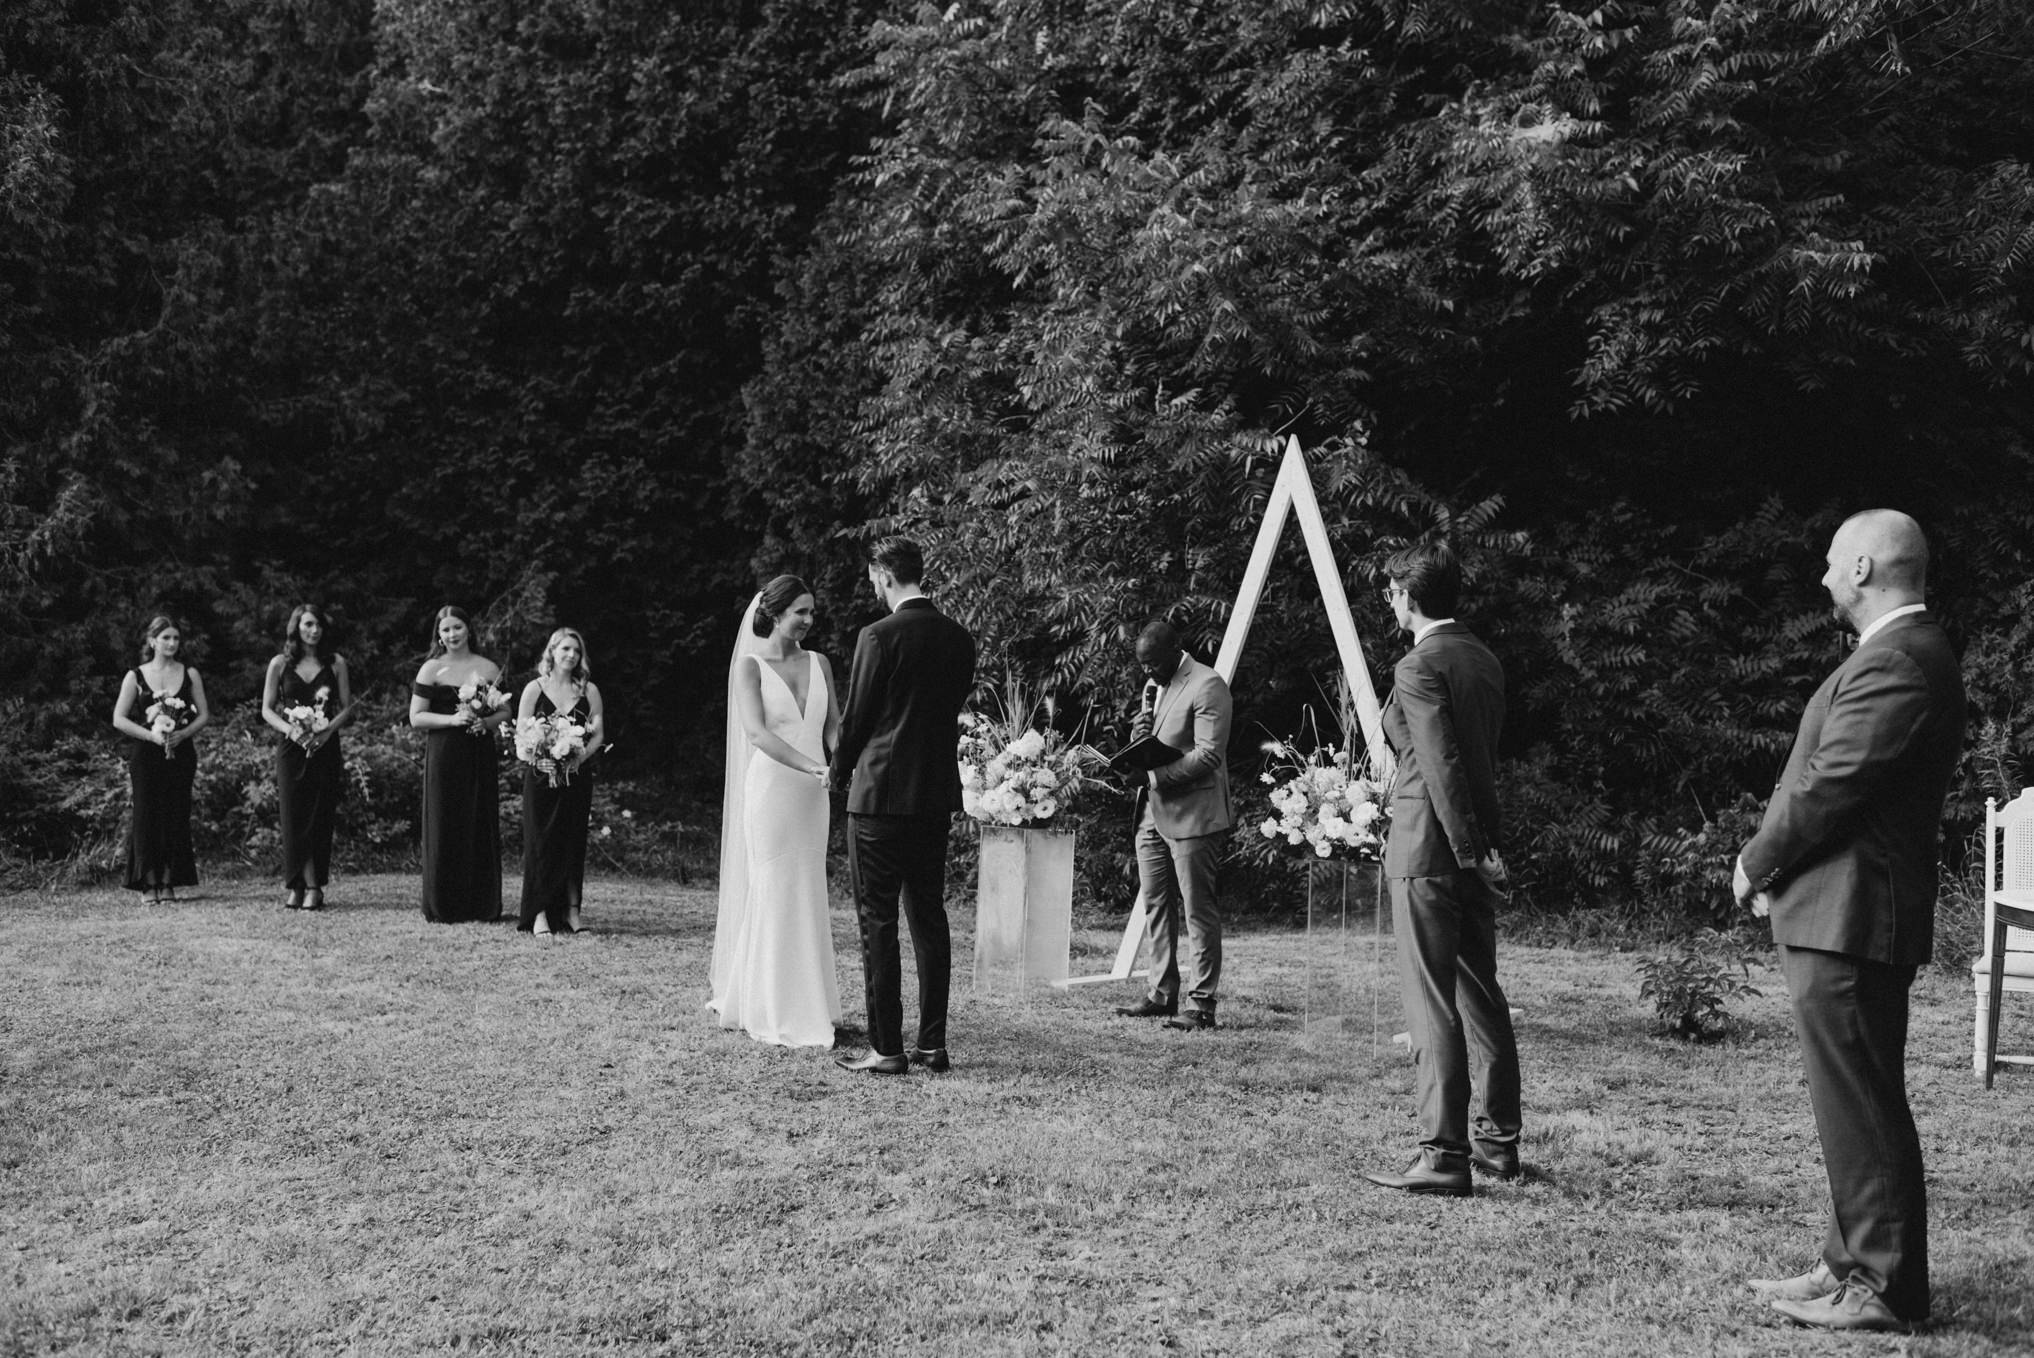 black and white of wedding ceremony outside surrounded by trees